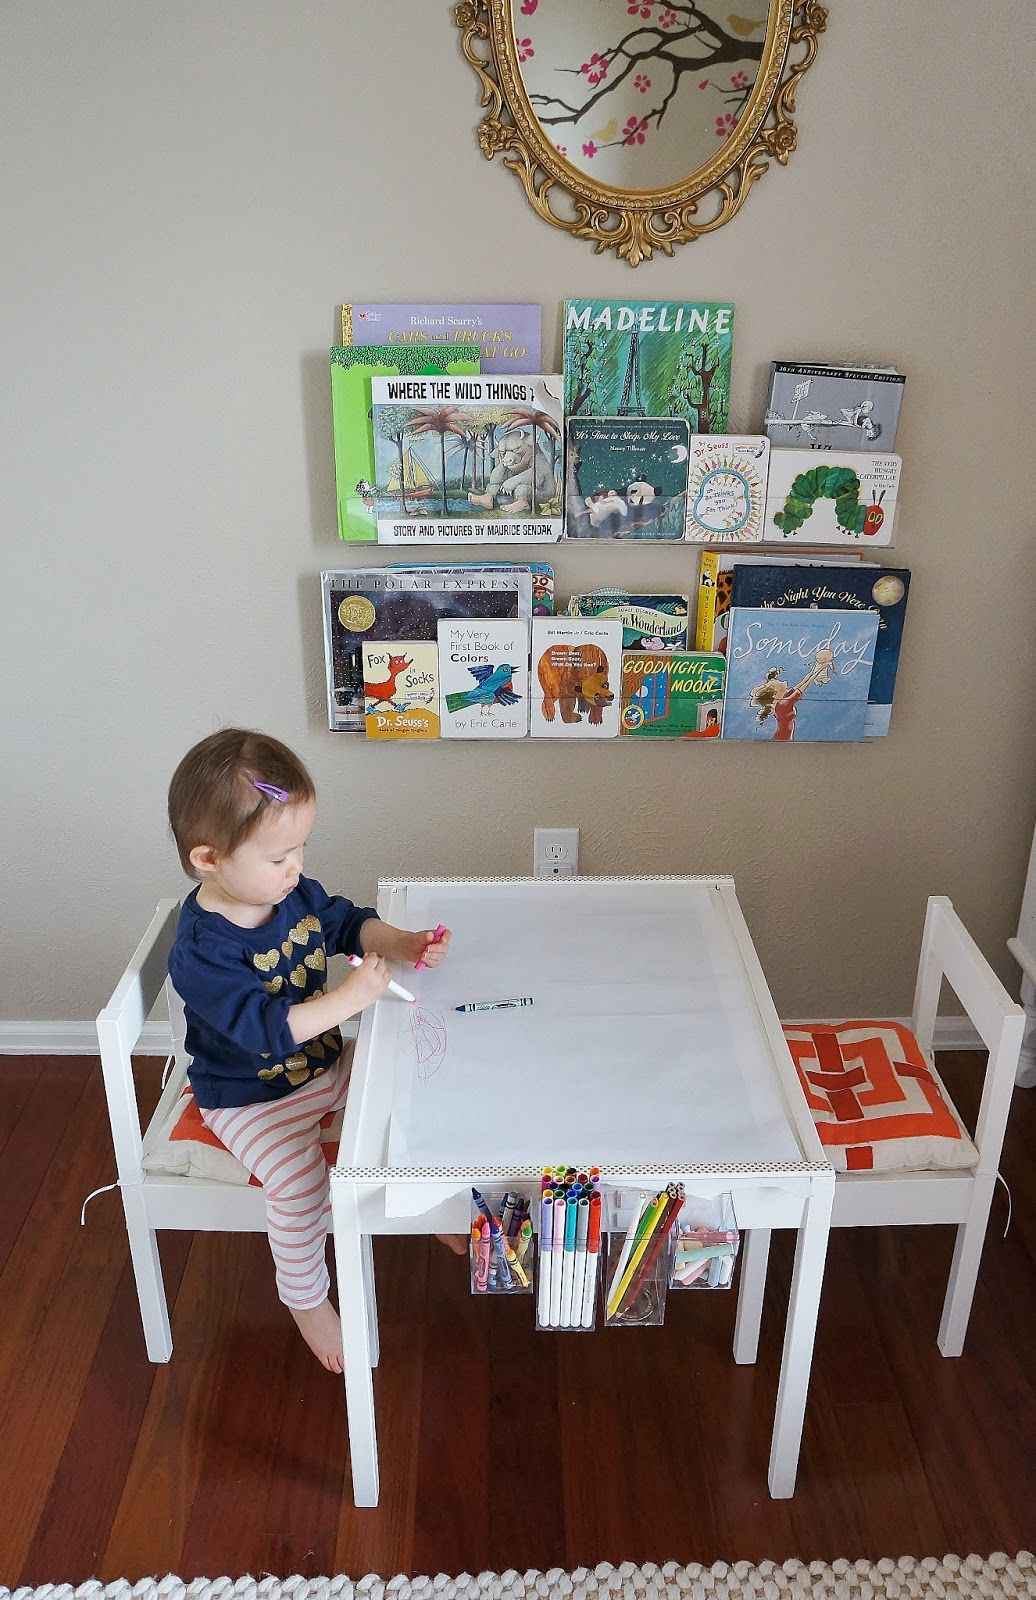 Pin By Becky On Playroom In 2019   Chair, Furniture, Playroom